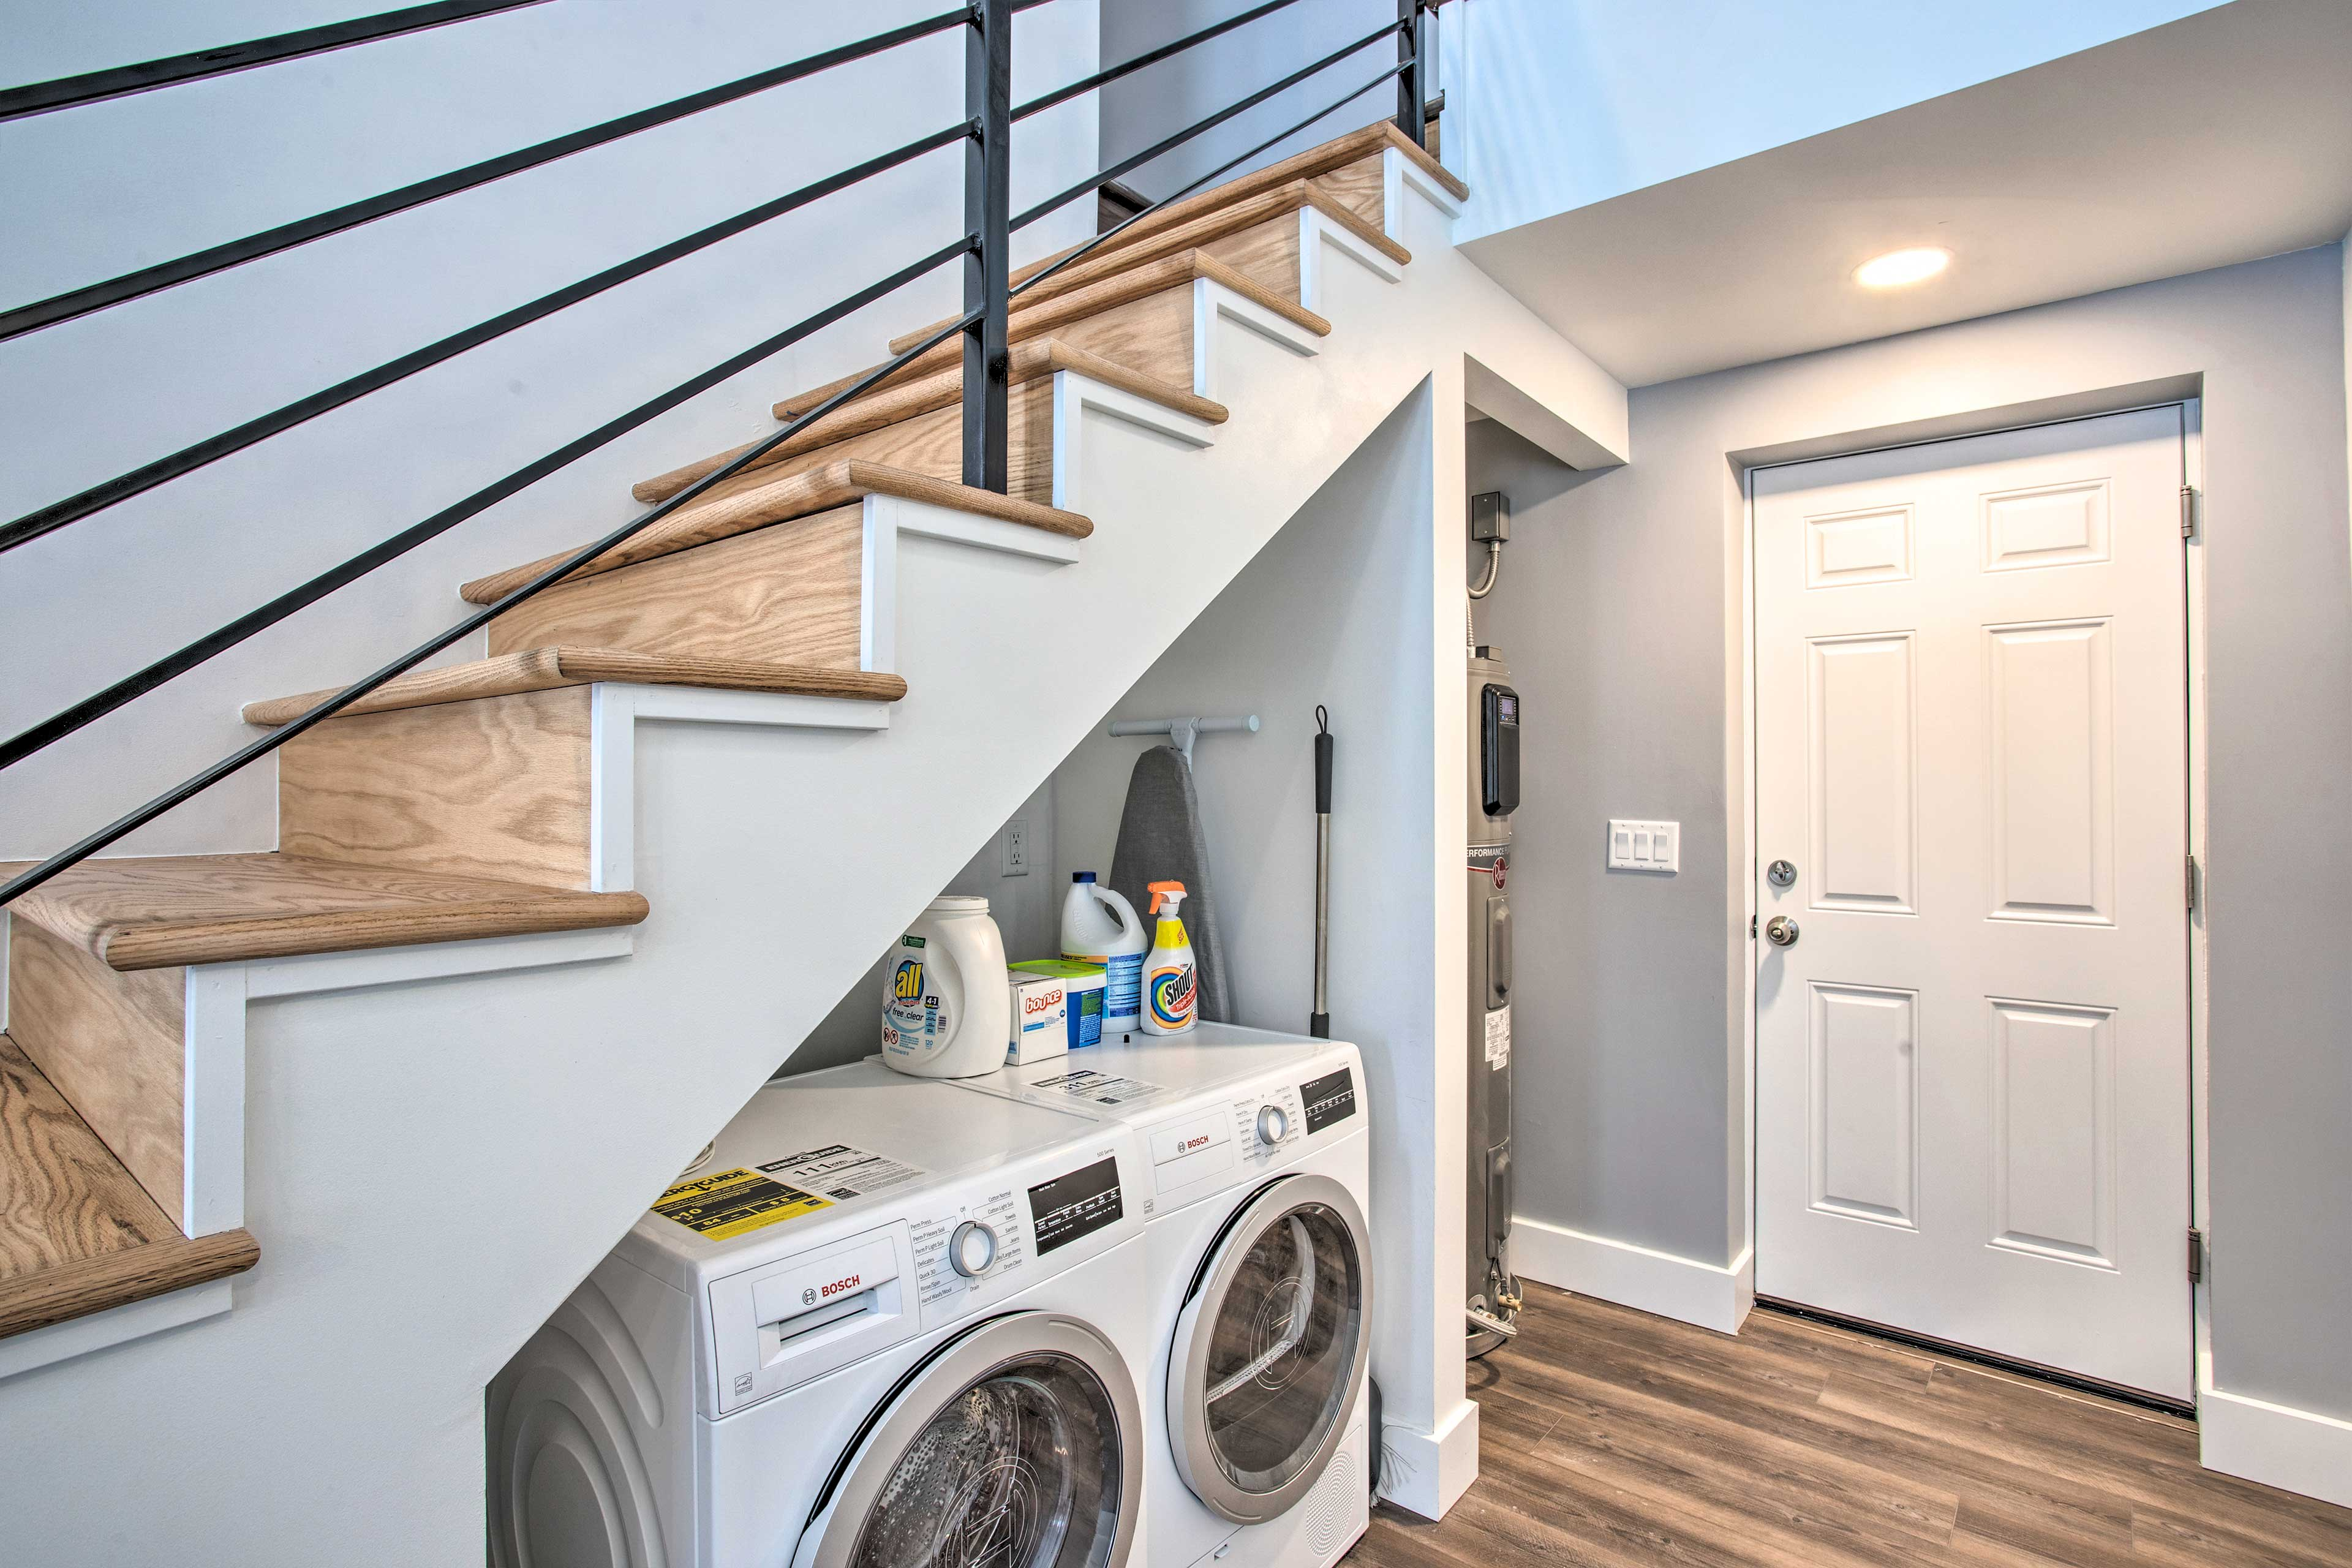 Laundry Area | Detergent Provided